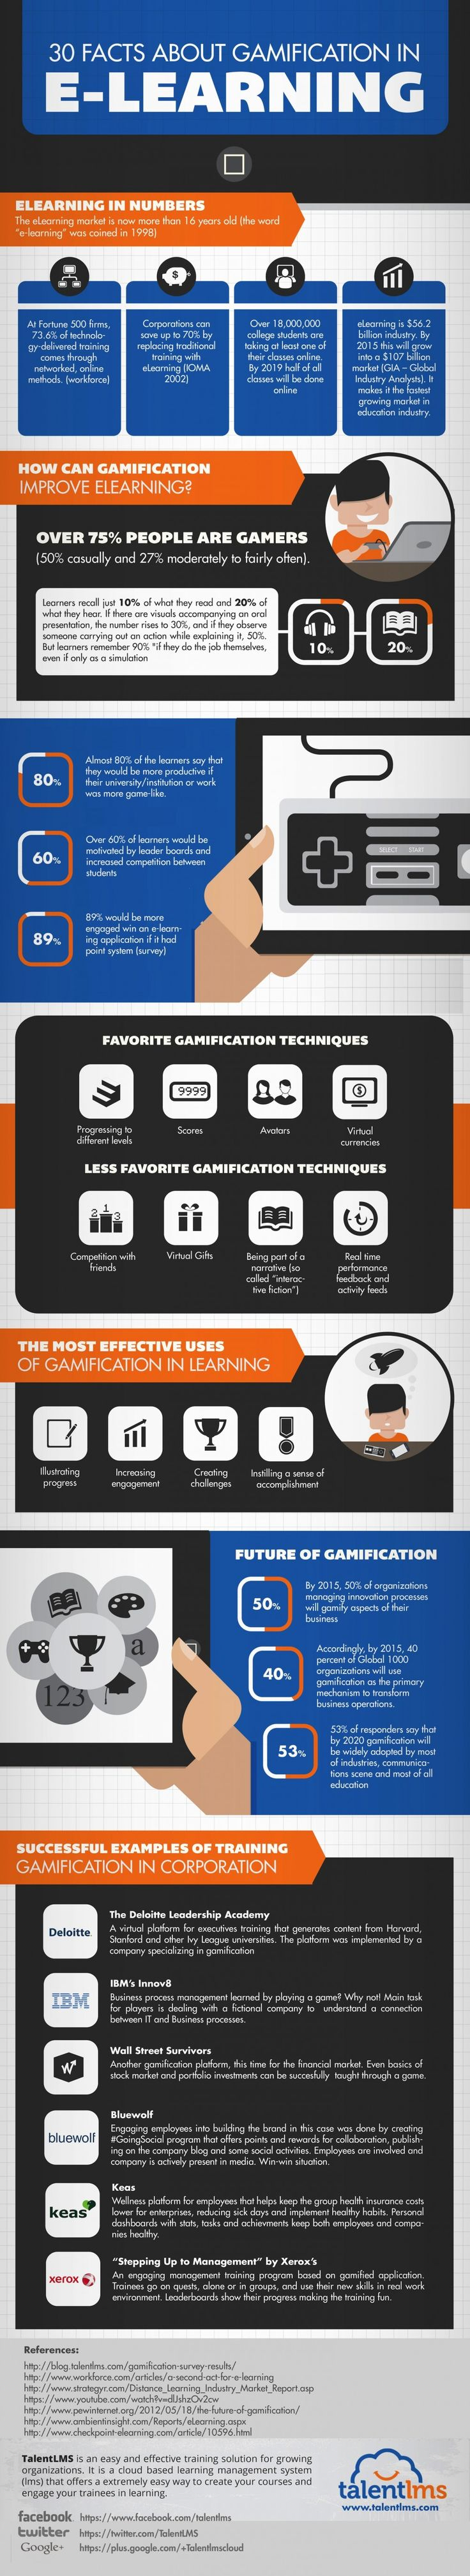 30 Facts About Gamification (we cannot ignore) :-) ...Infographic